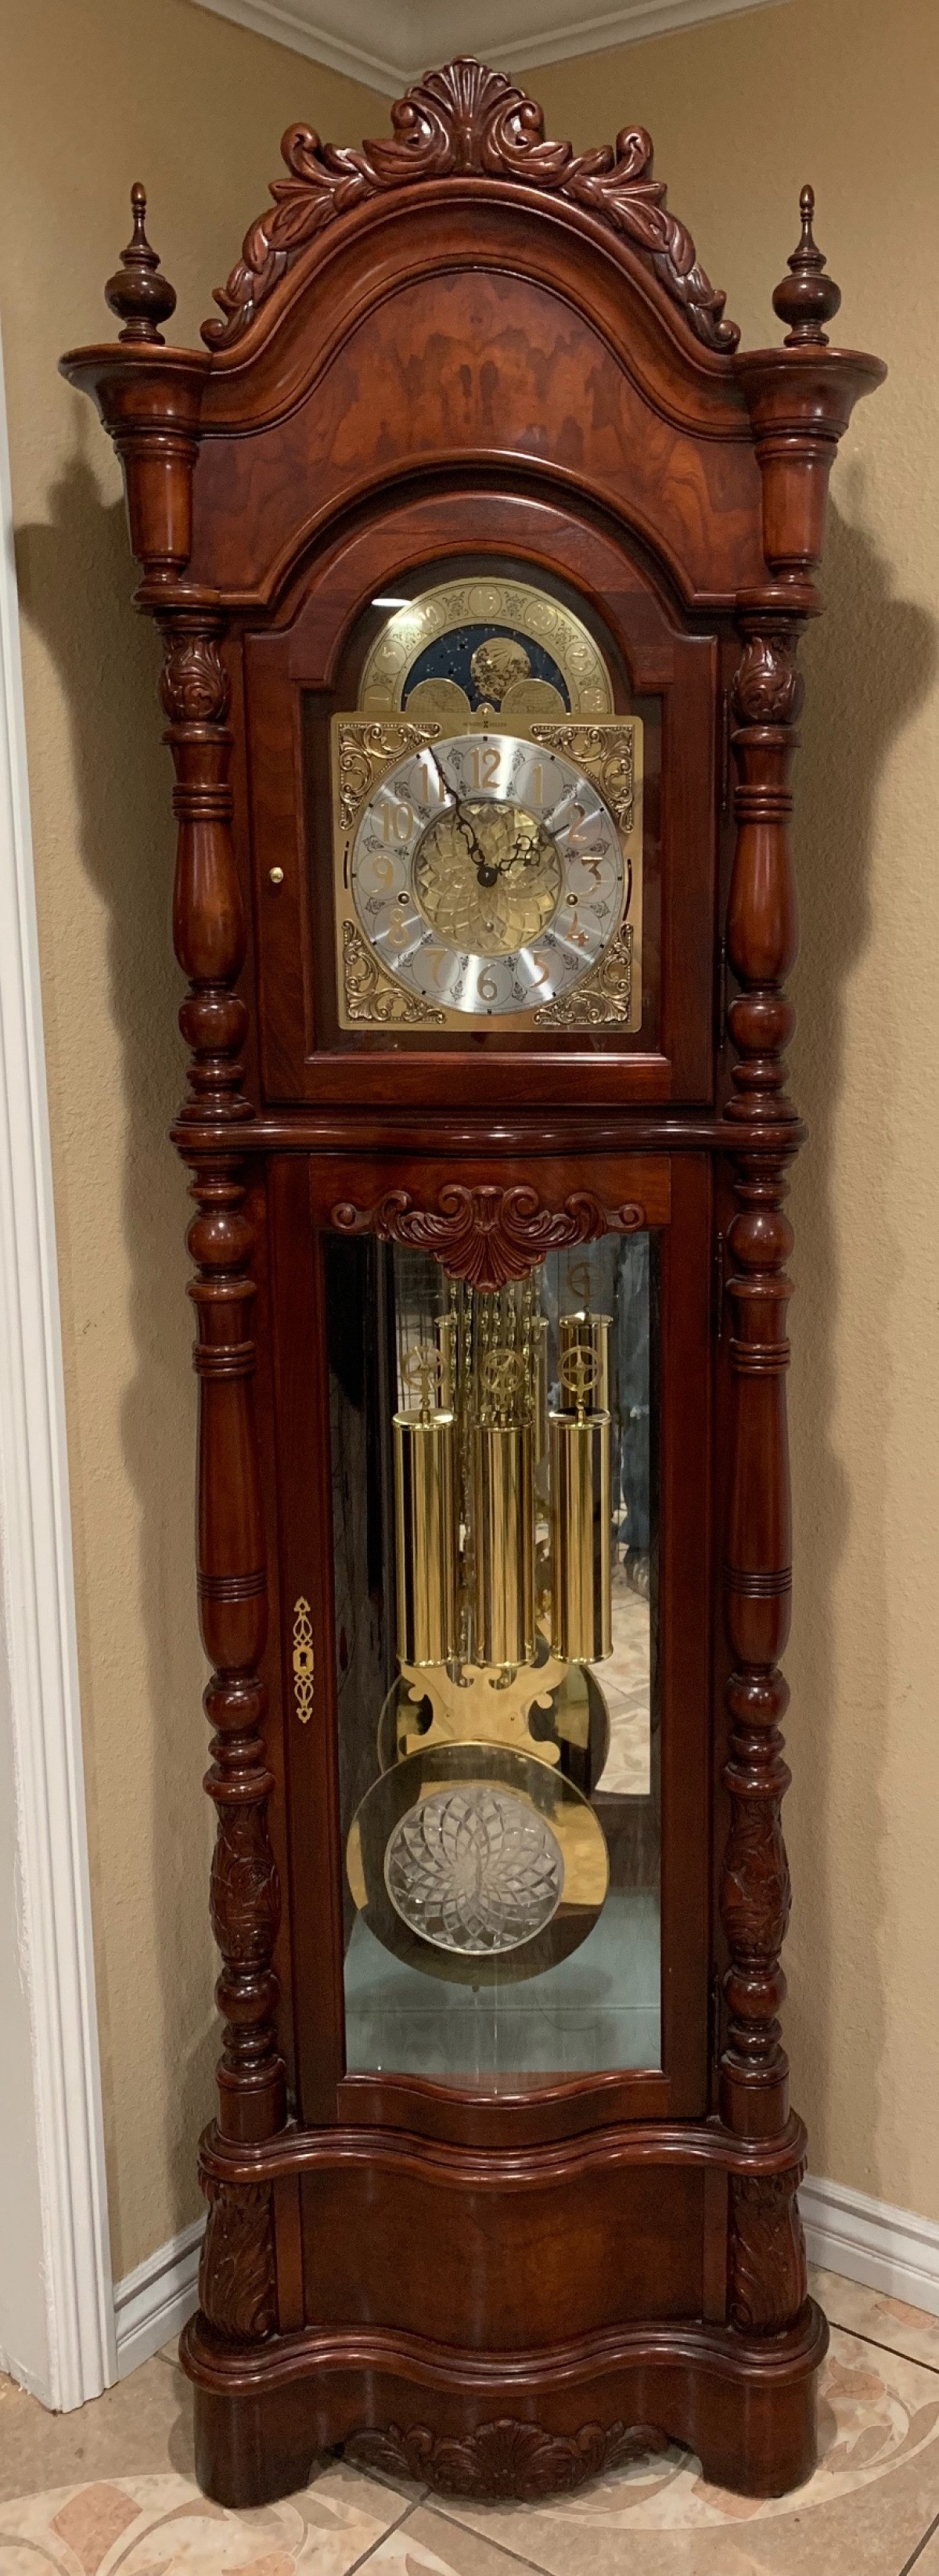 Determining The Value Of A Grandfather Clock Thriftyfun